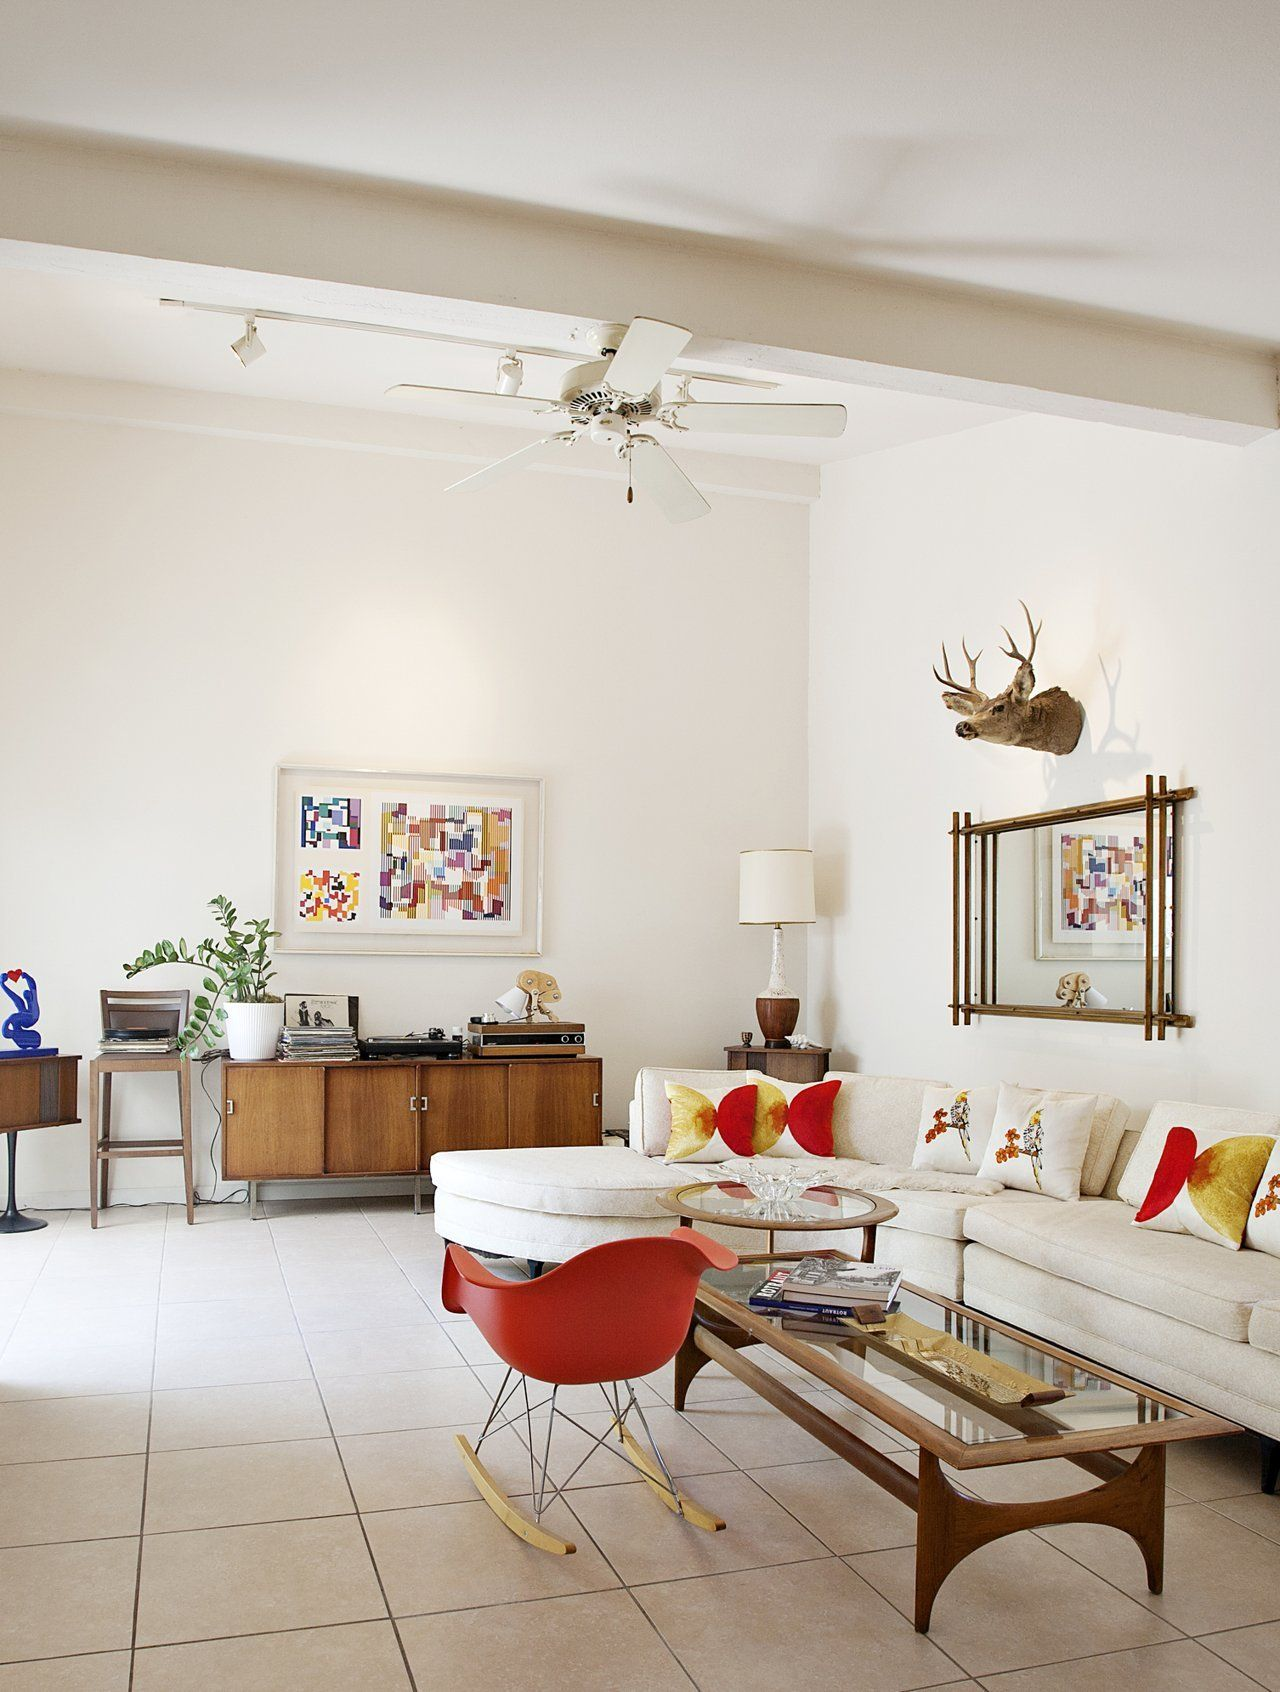 Townhouse Living Room Design: Bold Colors Meet Mid-Century In An Arizona Townhouse